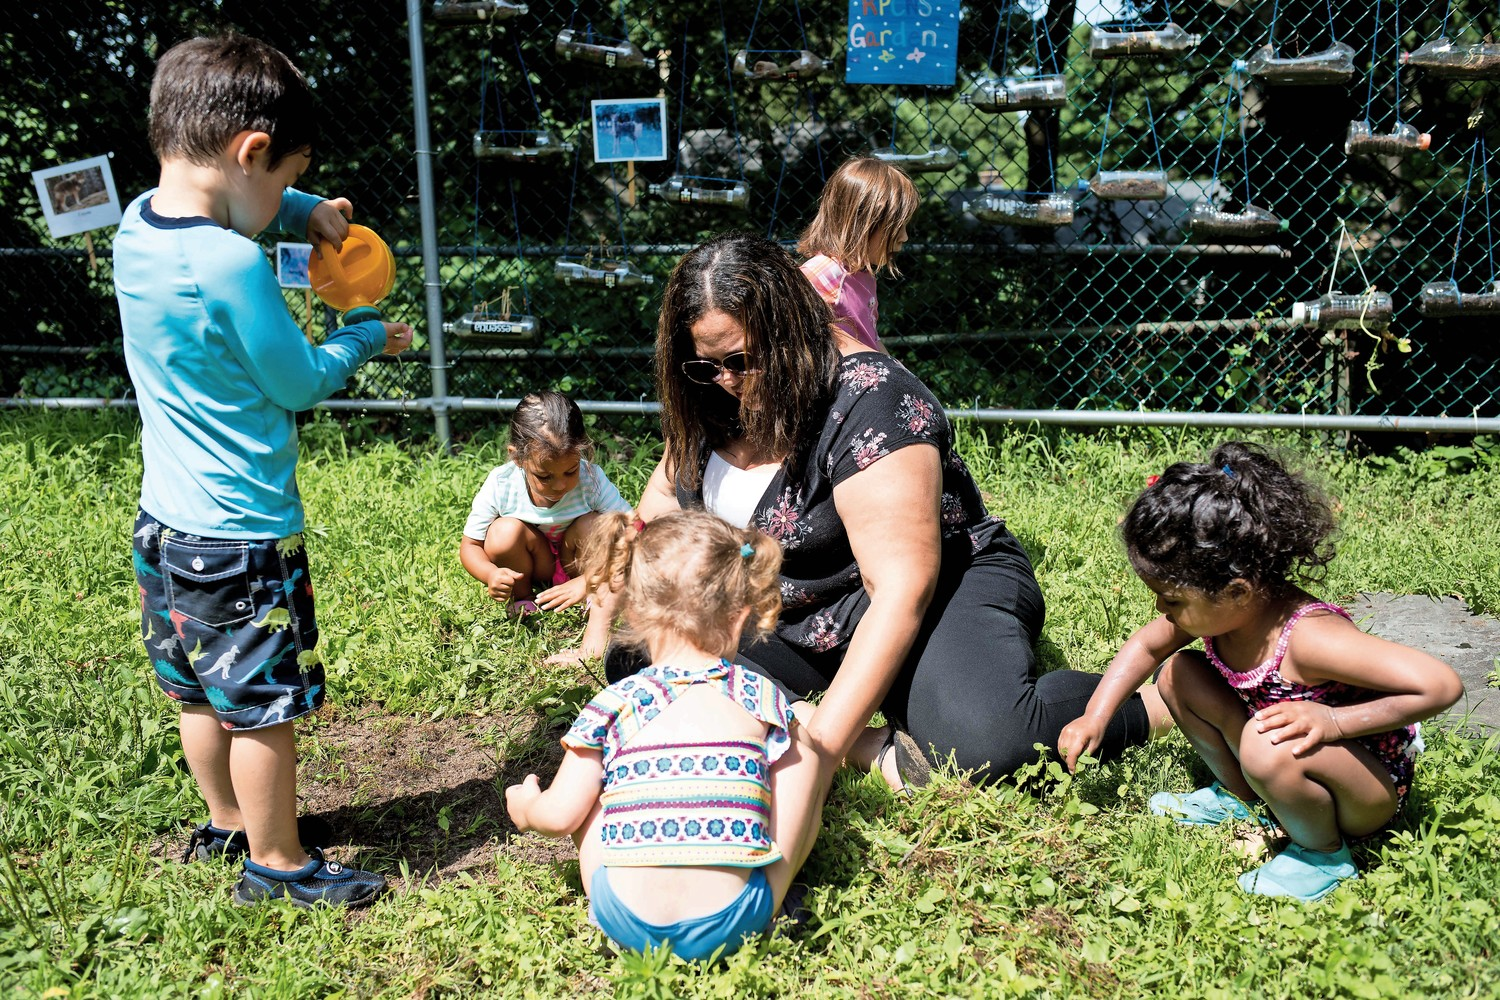 Yadhira Reyes, a teacher at Riverdale Presbyterian Church Nursery School, helps students prepare the soil for planting seeds as part of the school's 'Explorations in Nature' summer program.